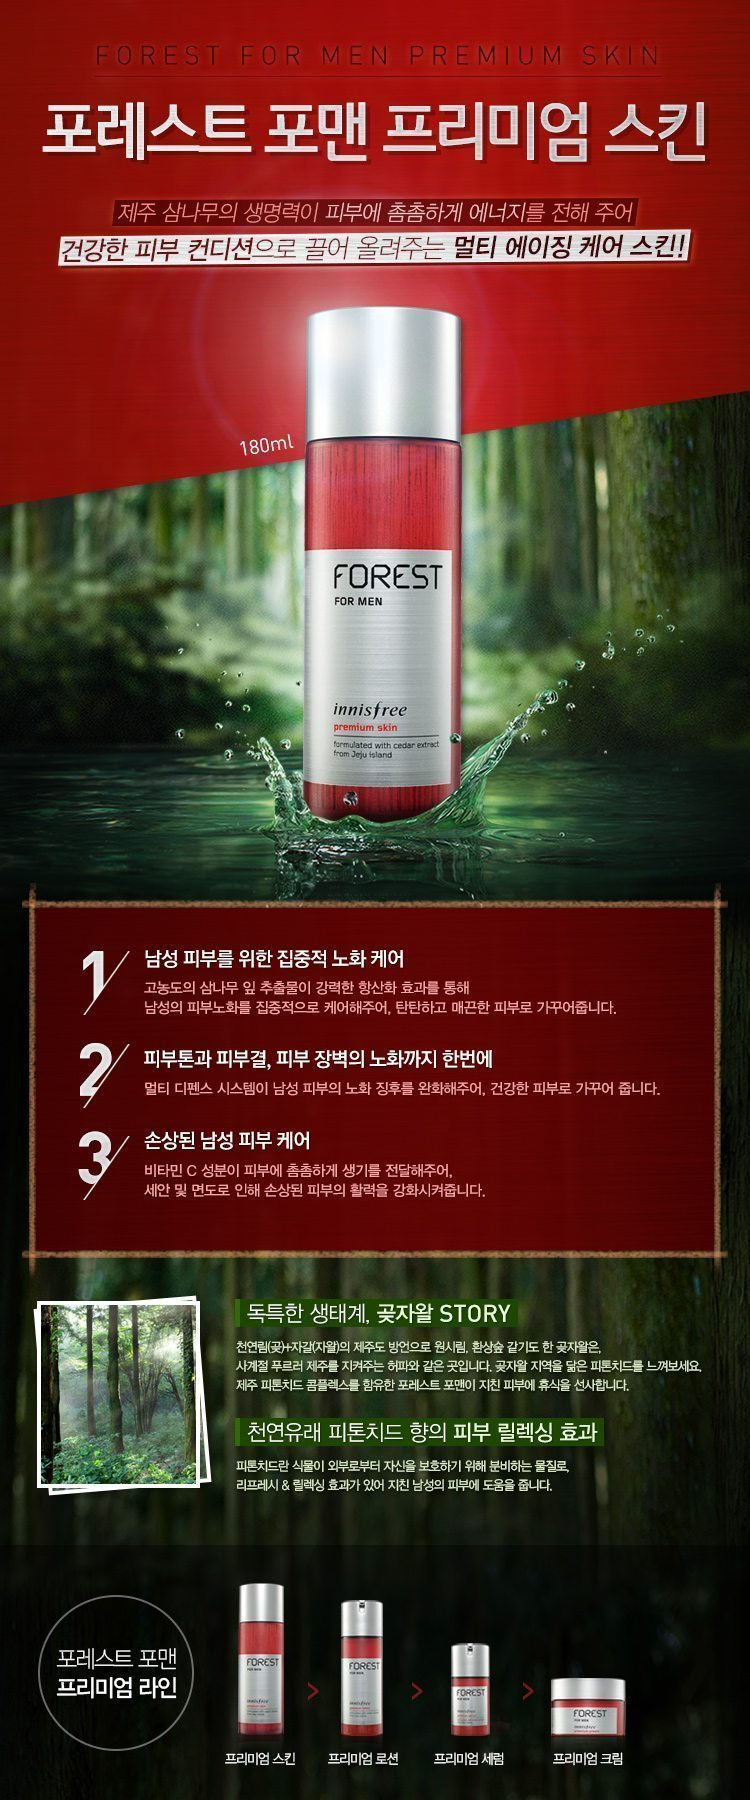 Innisfree Forest For Men Premium Skin Price Malaysia Greece Italy Denmark Belgium1